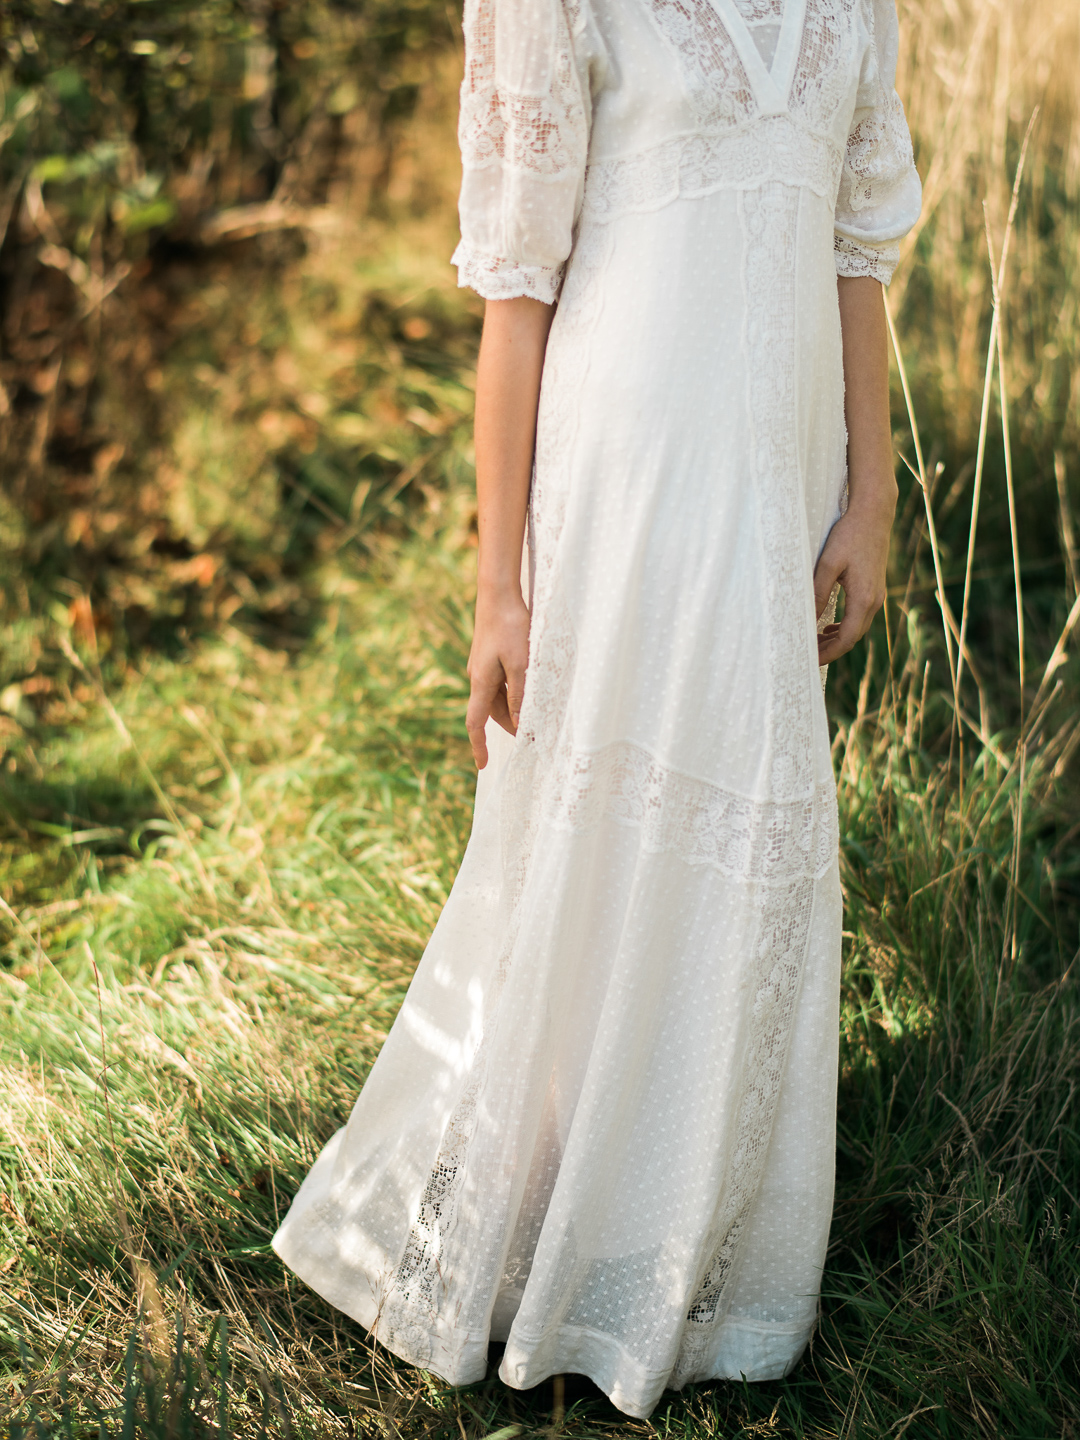 Festival Brides John Barwood Photography Styled Shoot45